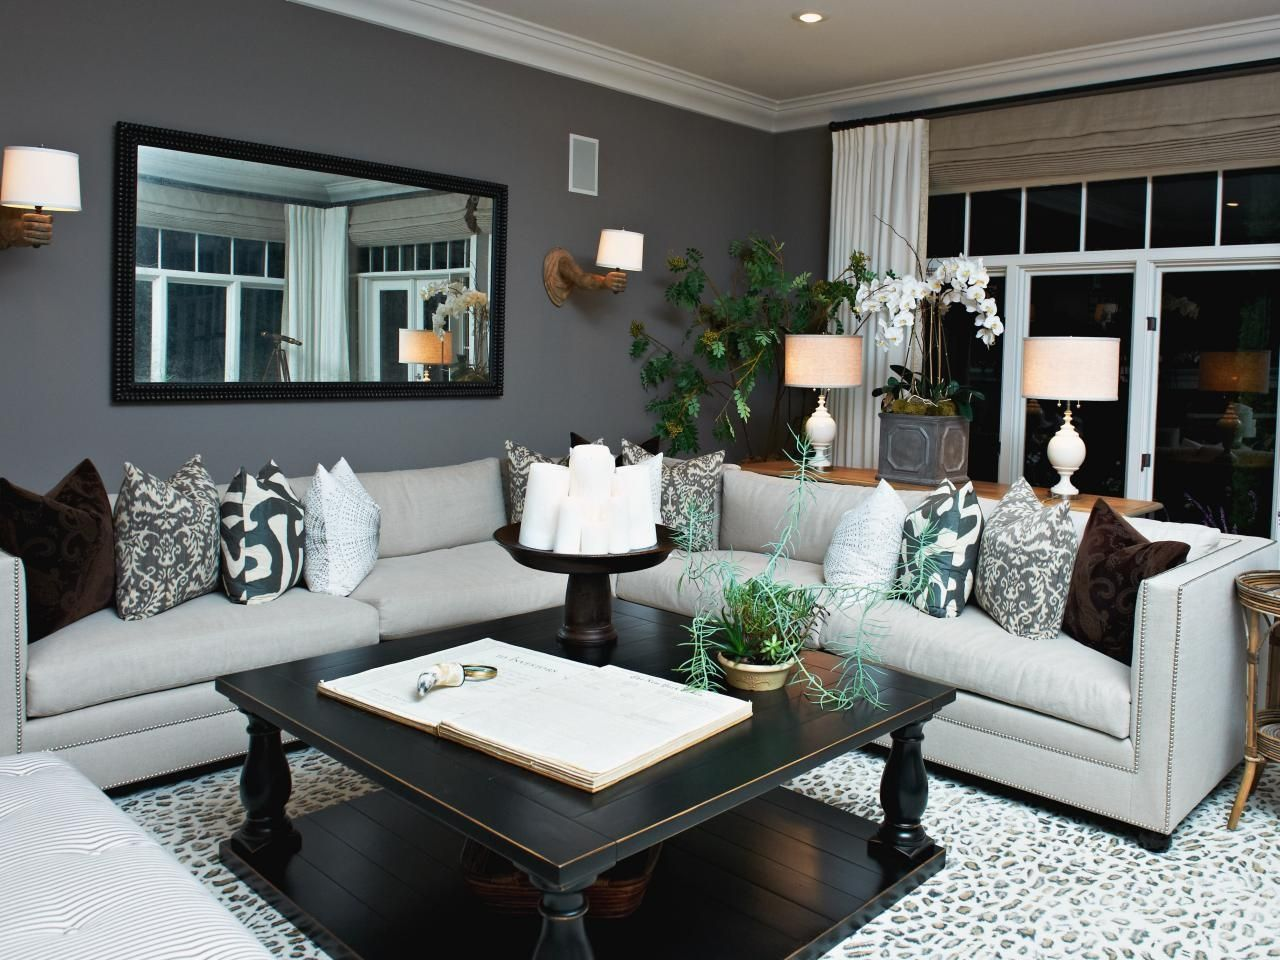 Beautiful Home Decor Ideas For Living Room Part - 1: Cozy Living Room Ideas | See More At Http://diningandlivingroom.com/